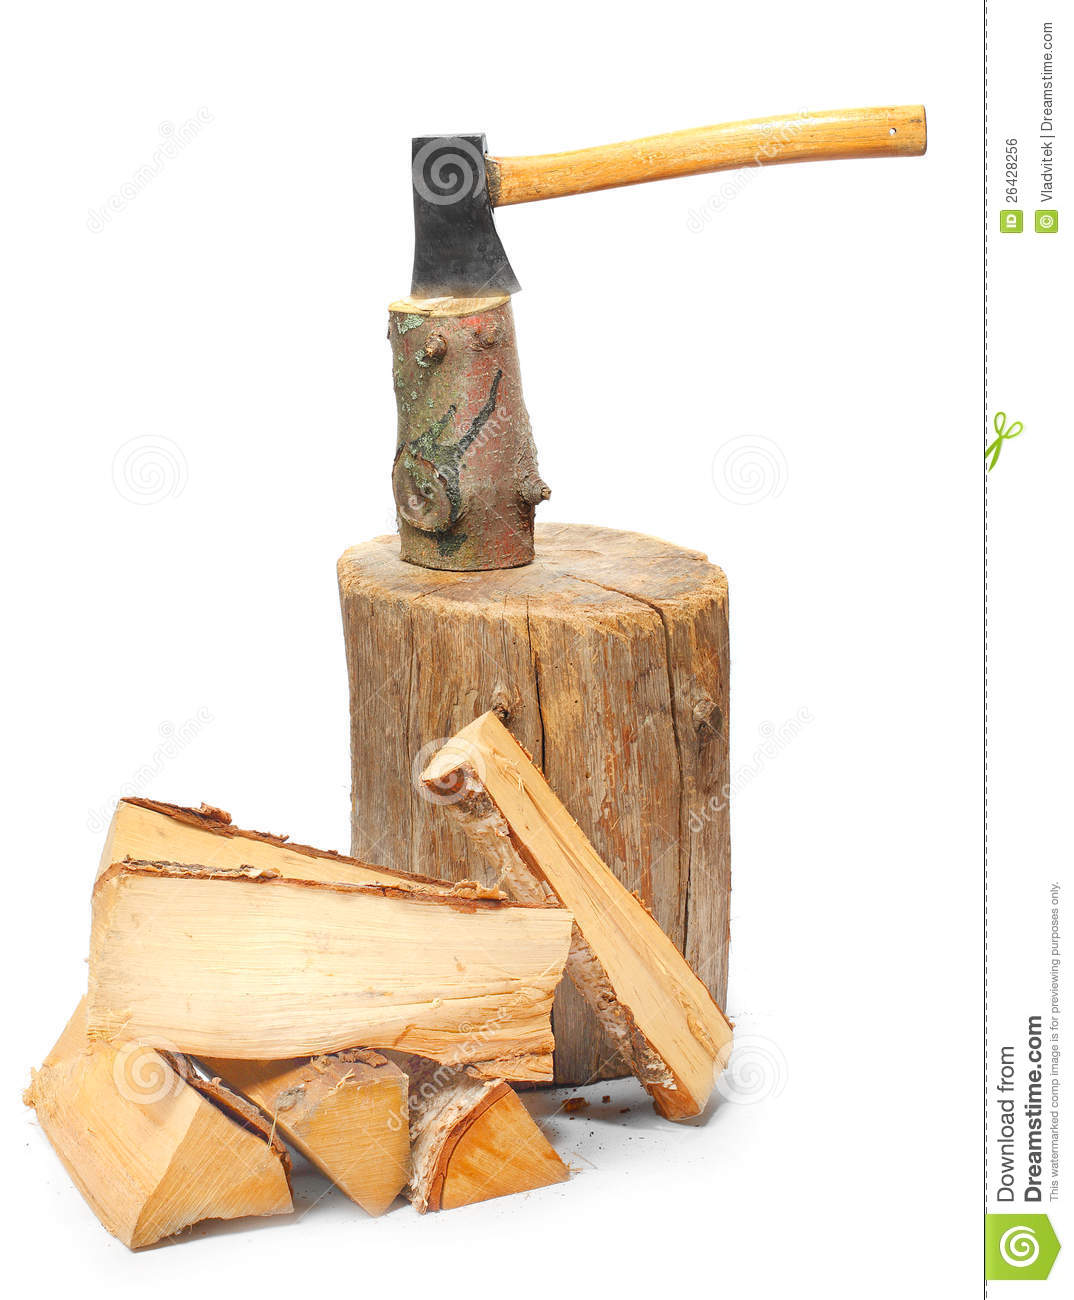 Cut Wood Logs ~ Cut logs fire wood and old axe stock photo image